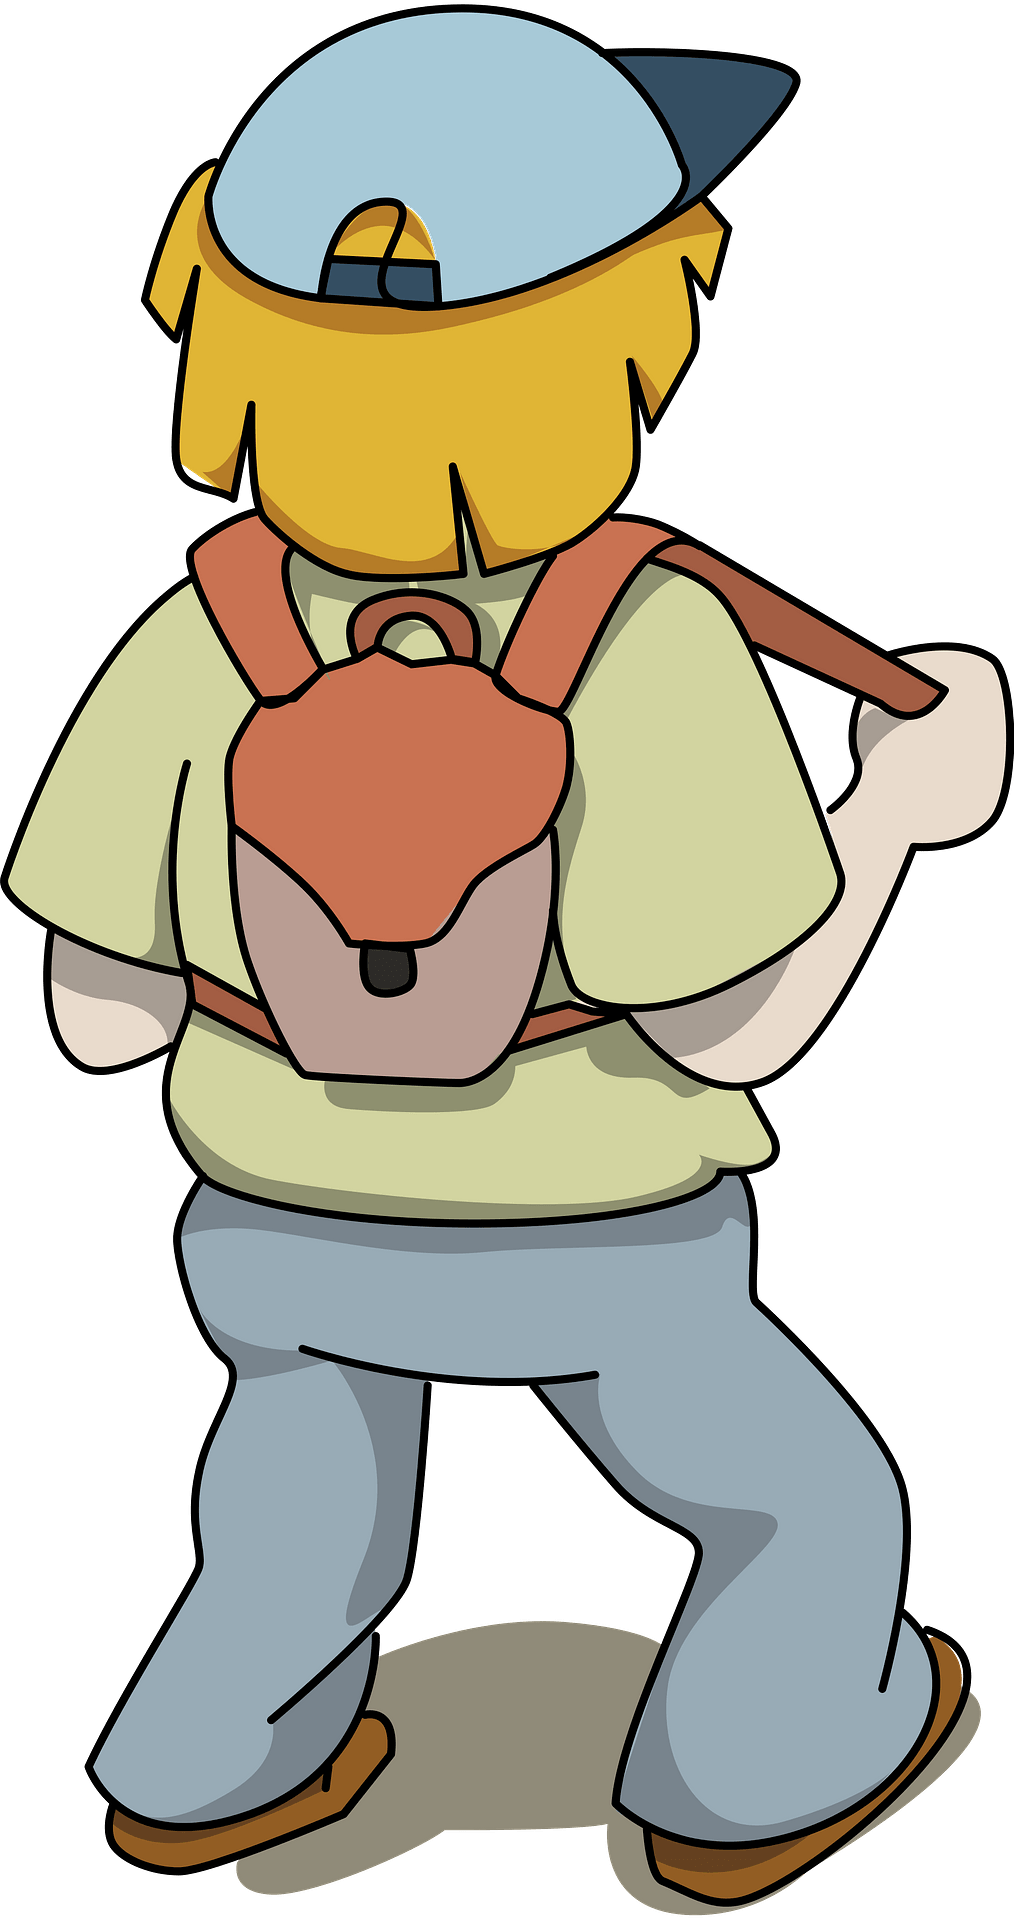 Free People Hiking Cliparts, Download Free Clip Art, Free Clip Art on  Clipart Library